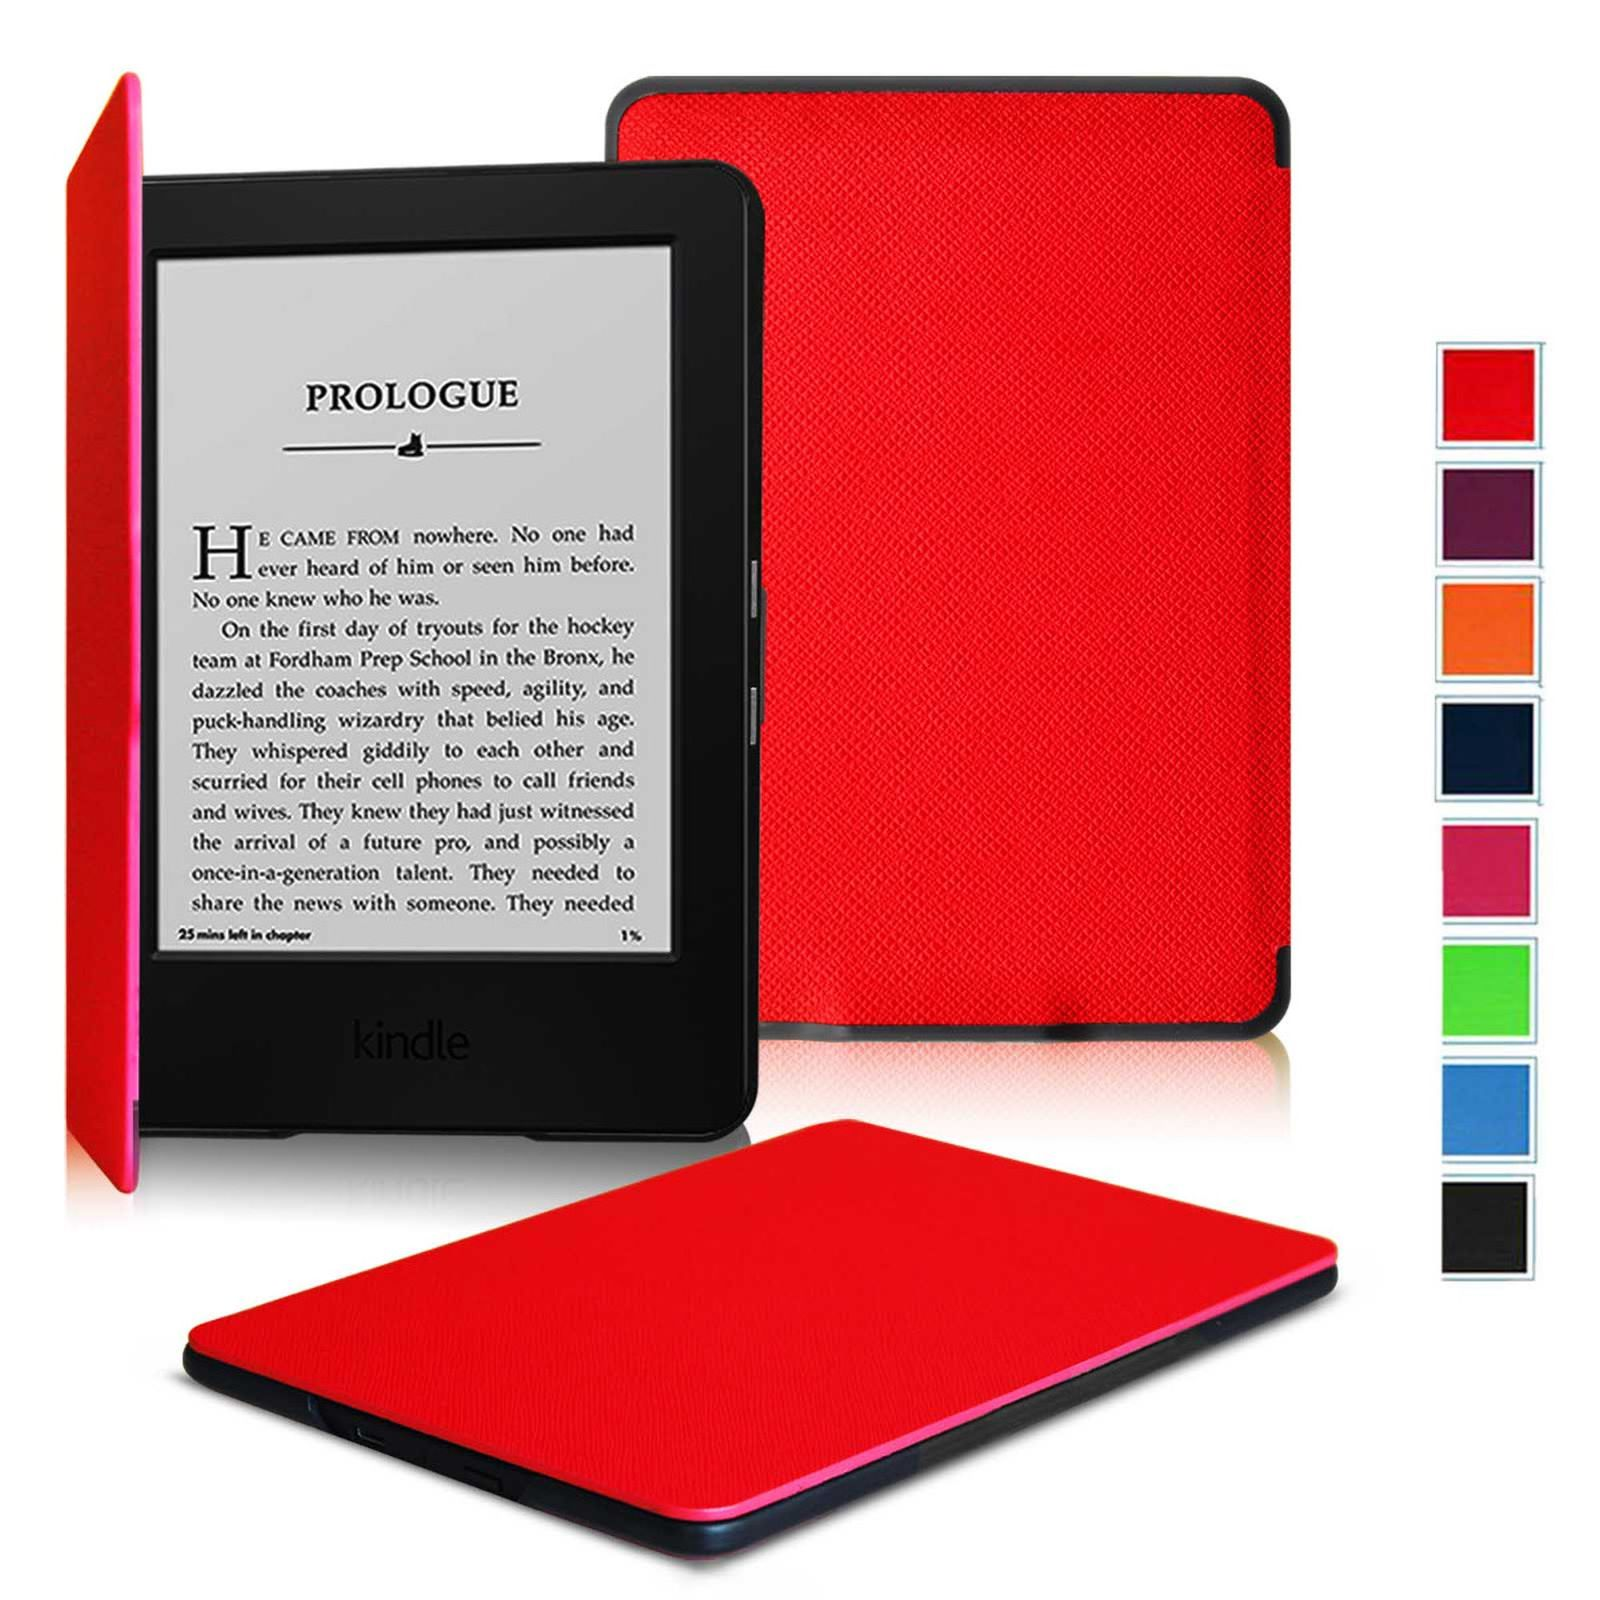 new arrival b33f6 a1446 Amazon Kindle 7th Generation and Kindle Voyage Receive Firmware 5.6.2.1